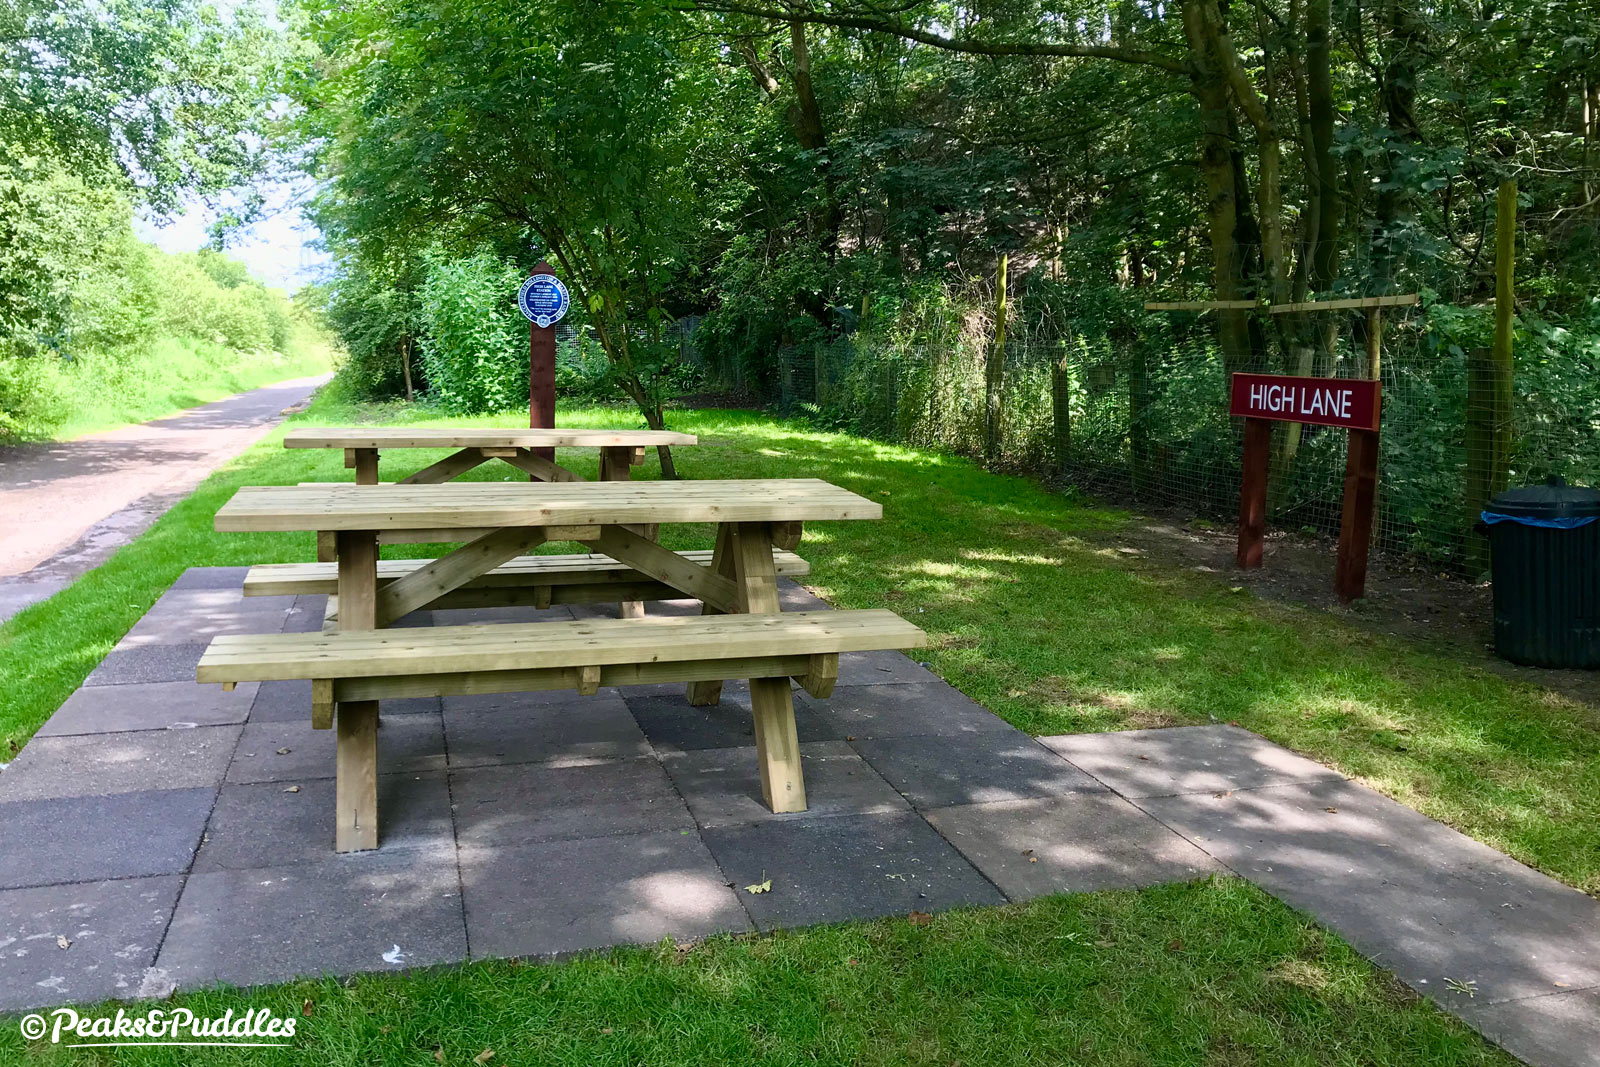 For the 150th anniversary of the Macclesfield, Bollington and Marple railway, volunteers cleared years of vegetation overgrowth to bring back a delightful picnic stop at the former High Lane railway station.